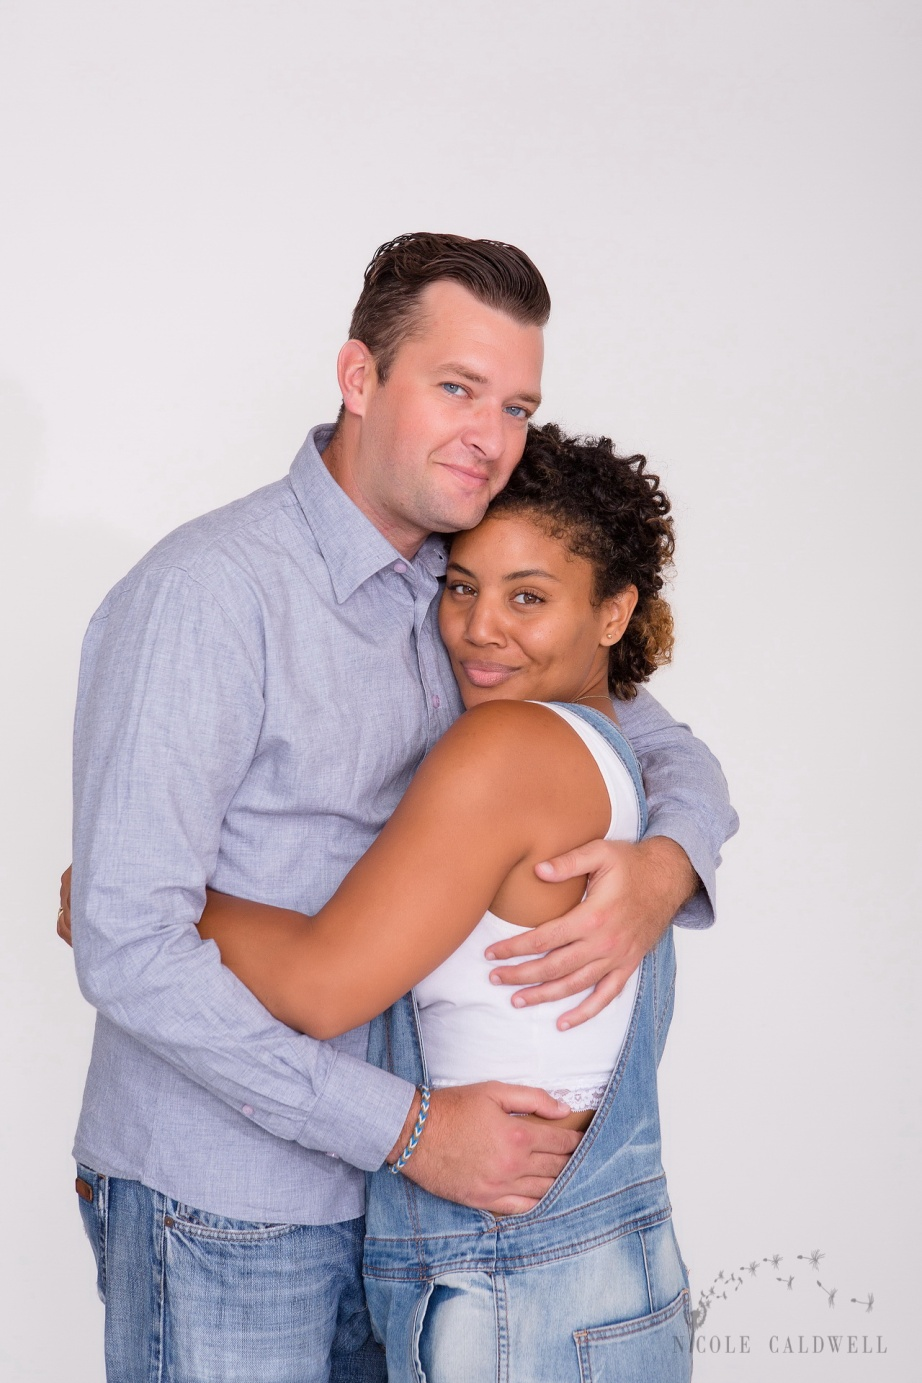 engagement photo locations studio photography by nicole caldwell 16